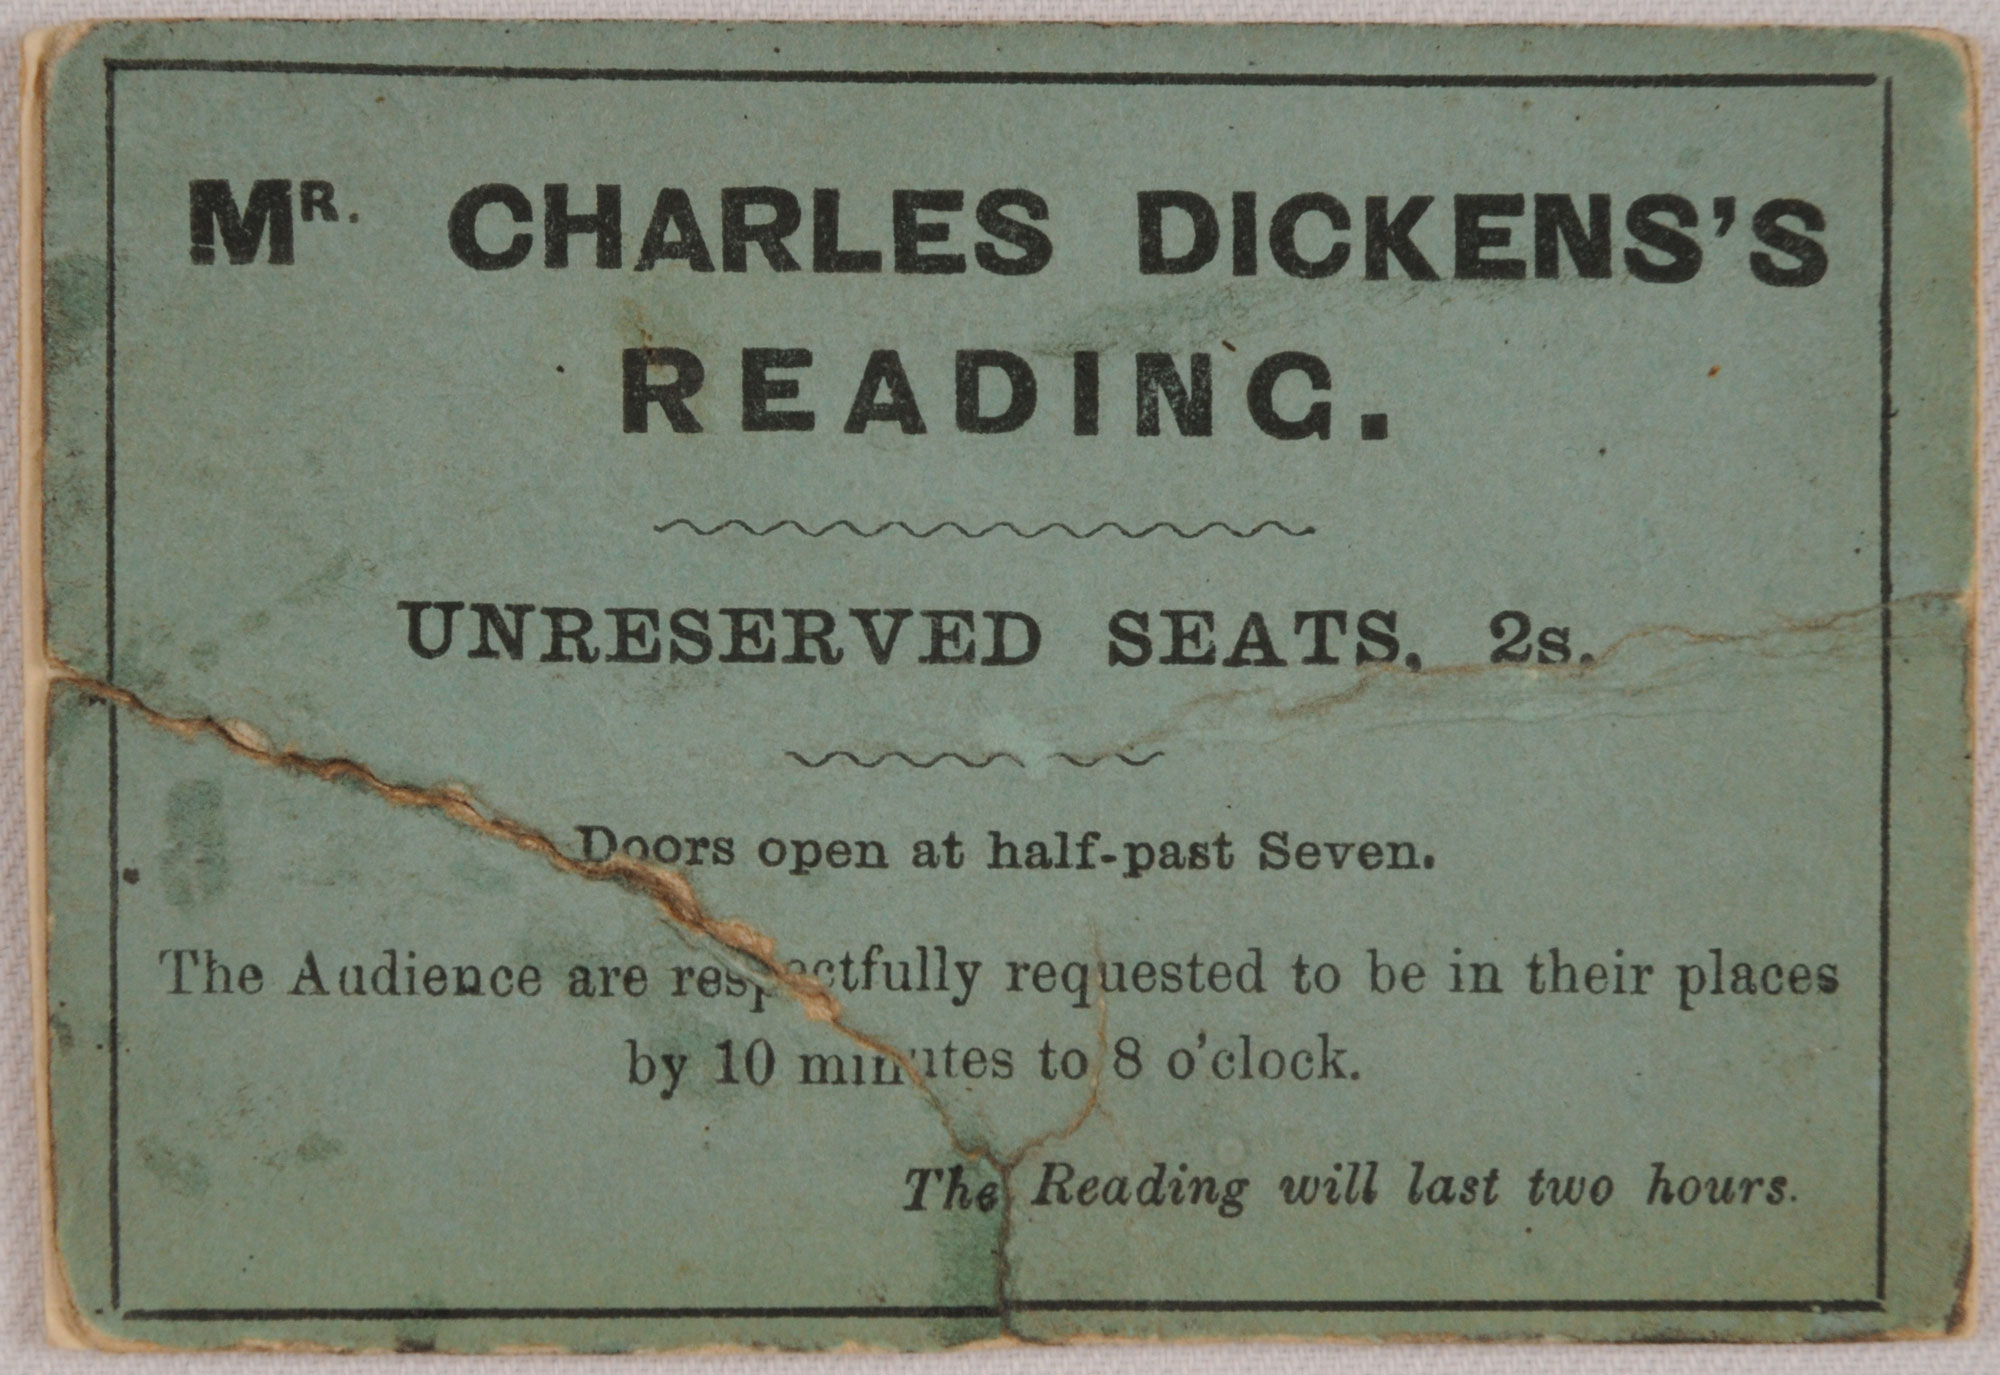 Charles Dickens reading tour ticket